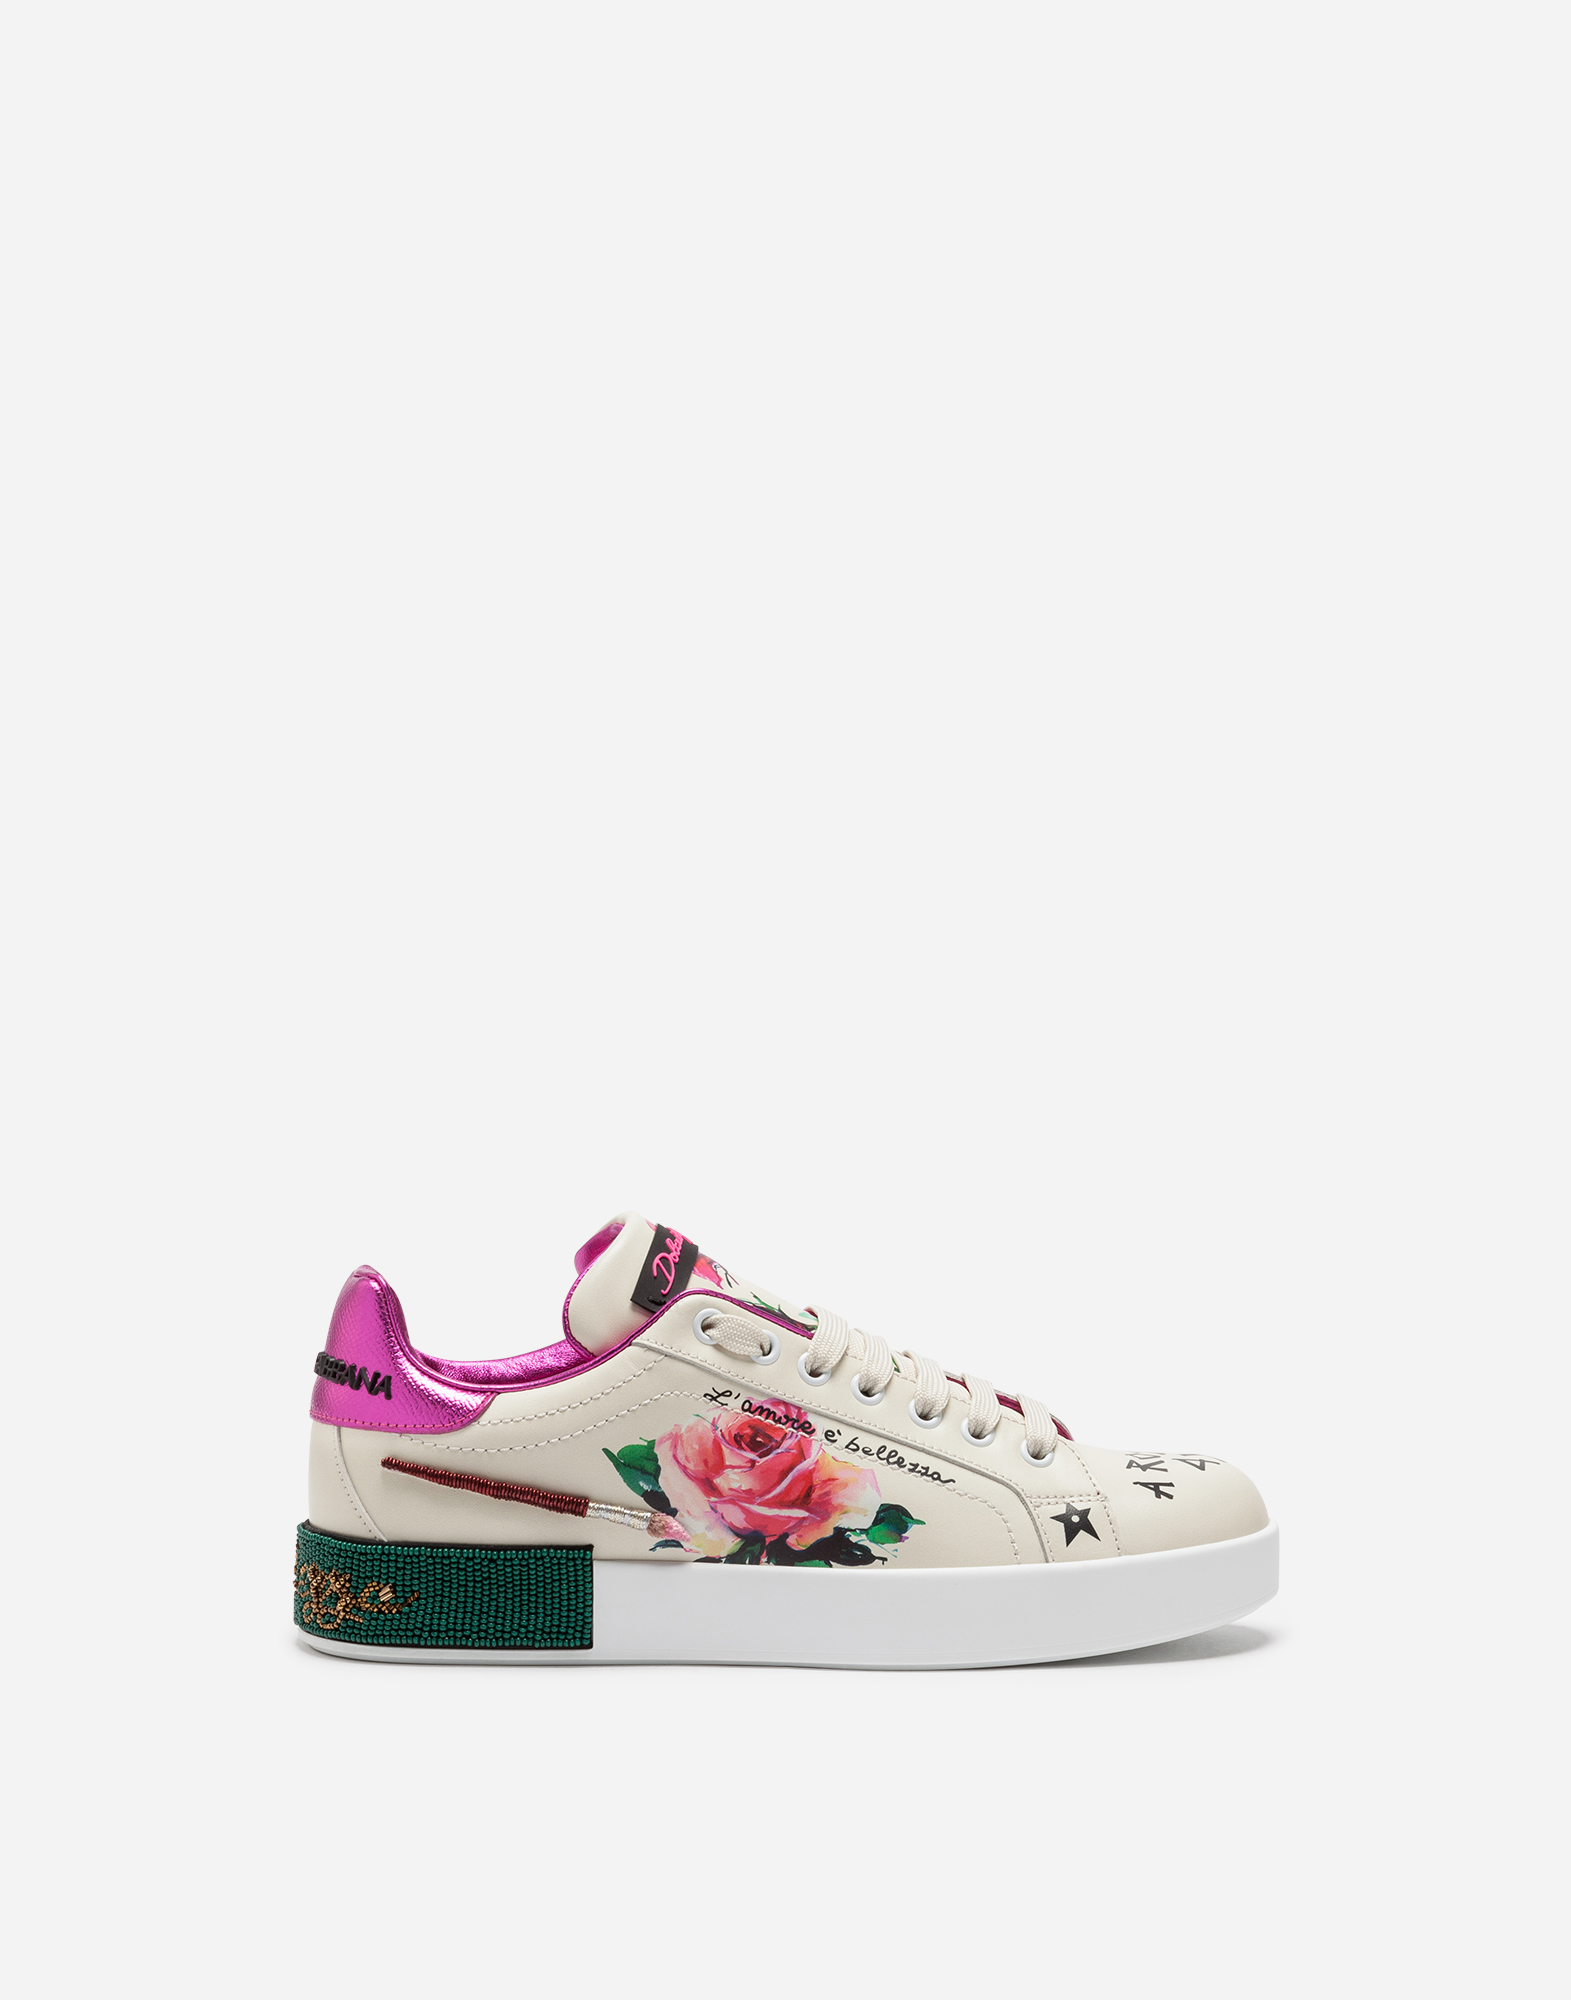 PORTOFINO SNEAKERS IN PRINTED CALFSKIN WITH PATCH AND EMBROIDERY